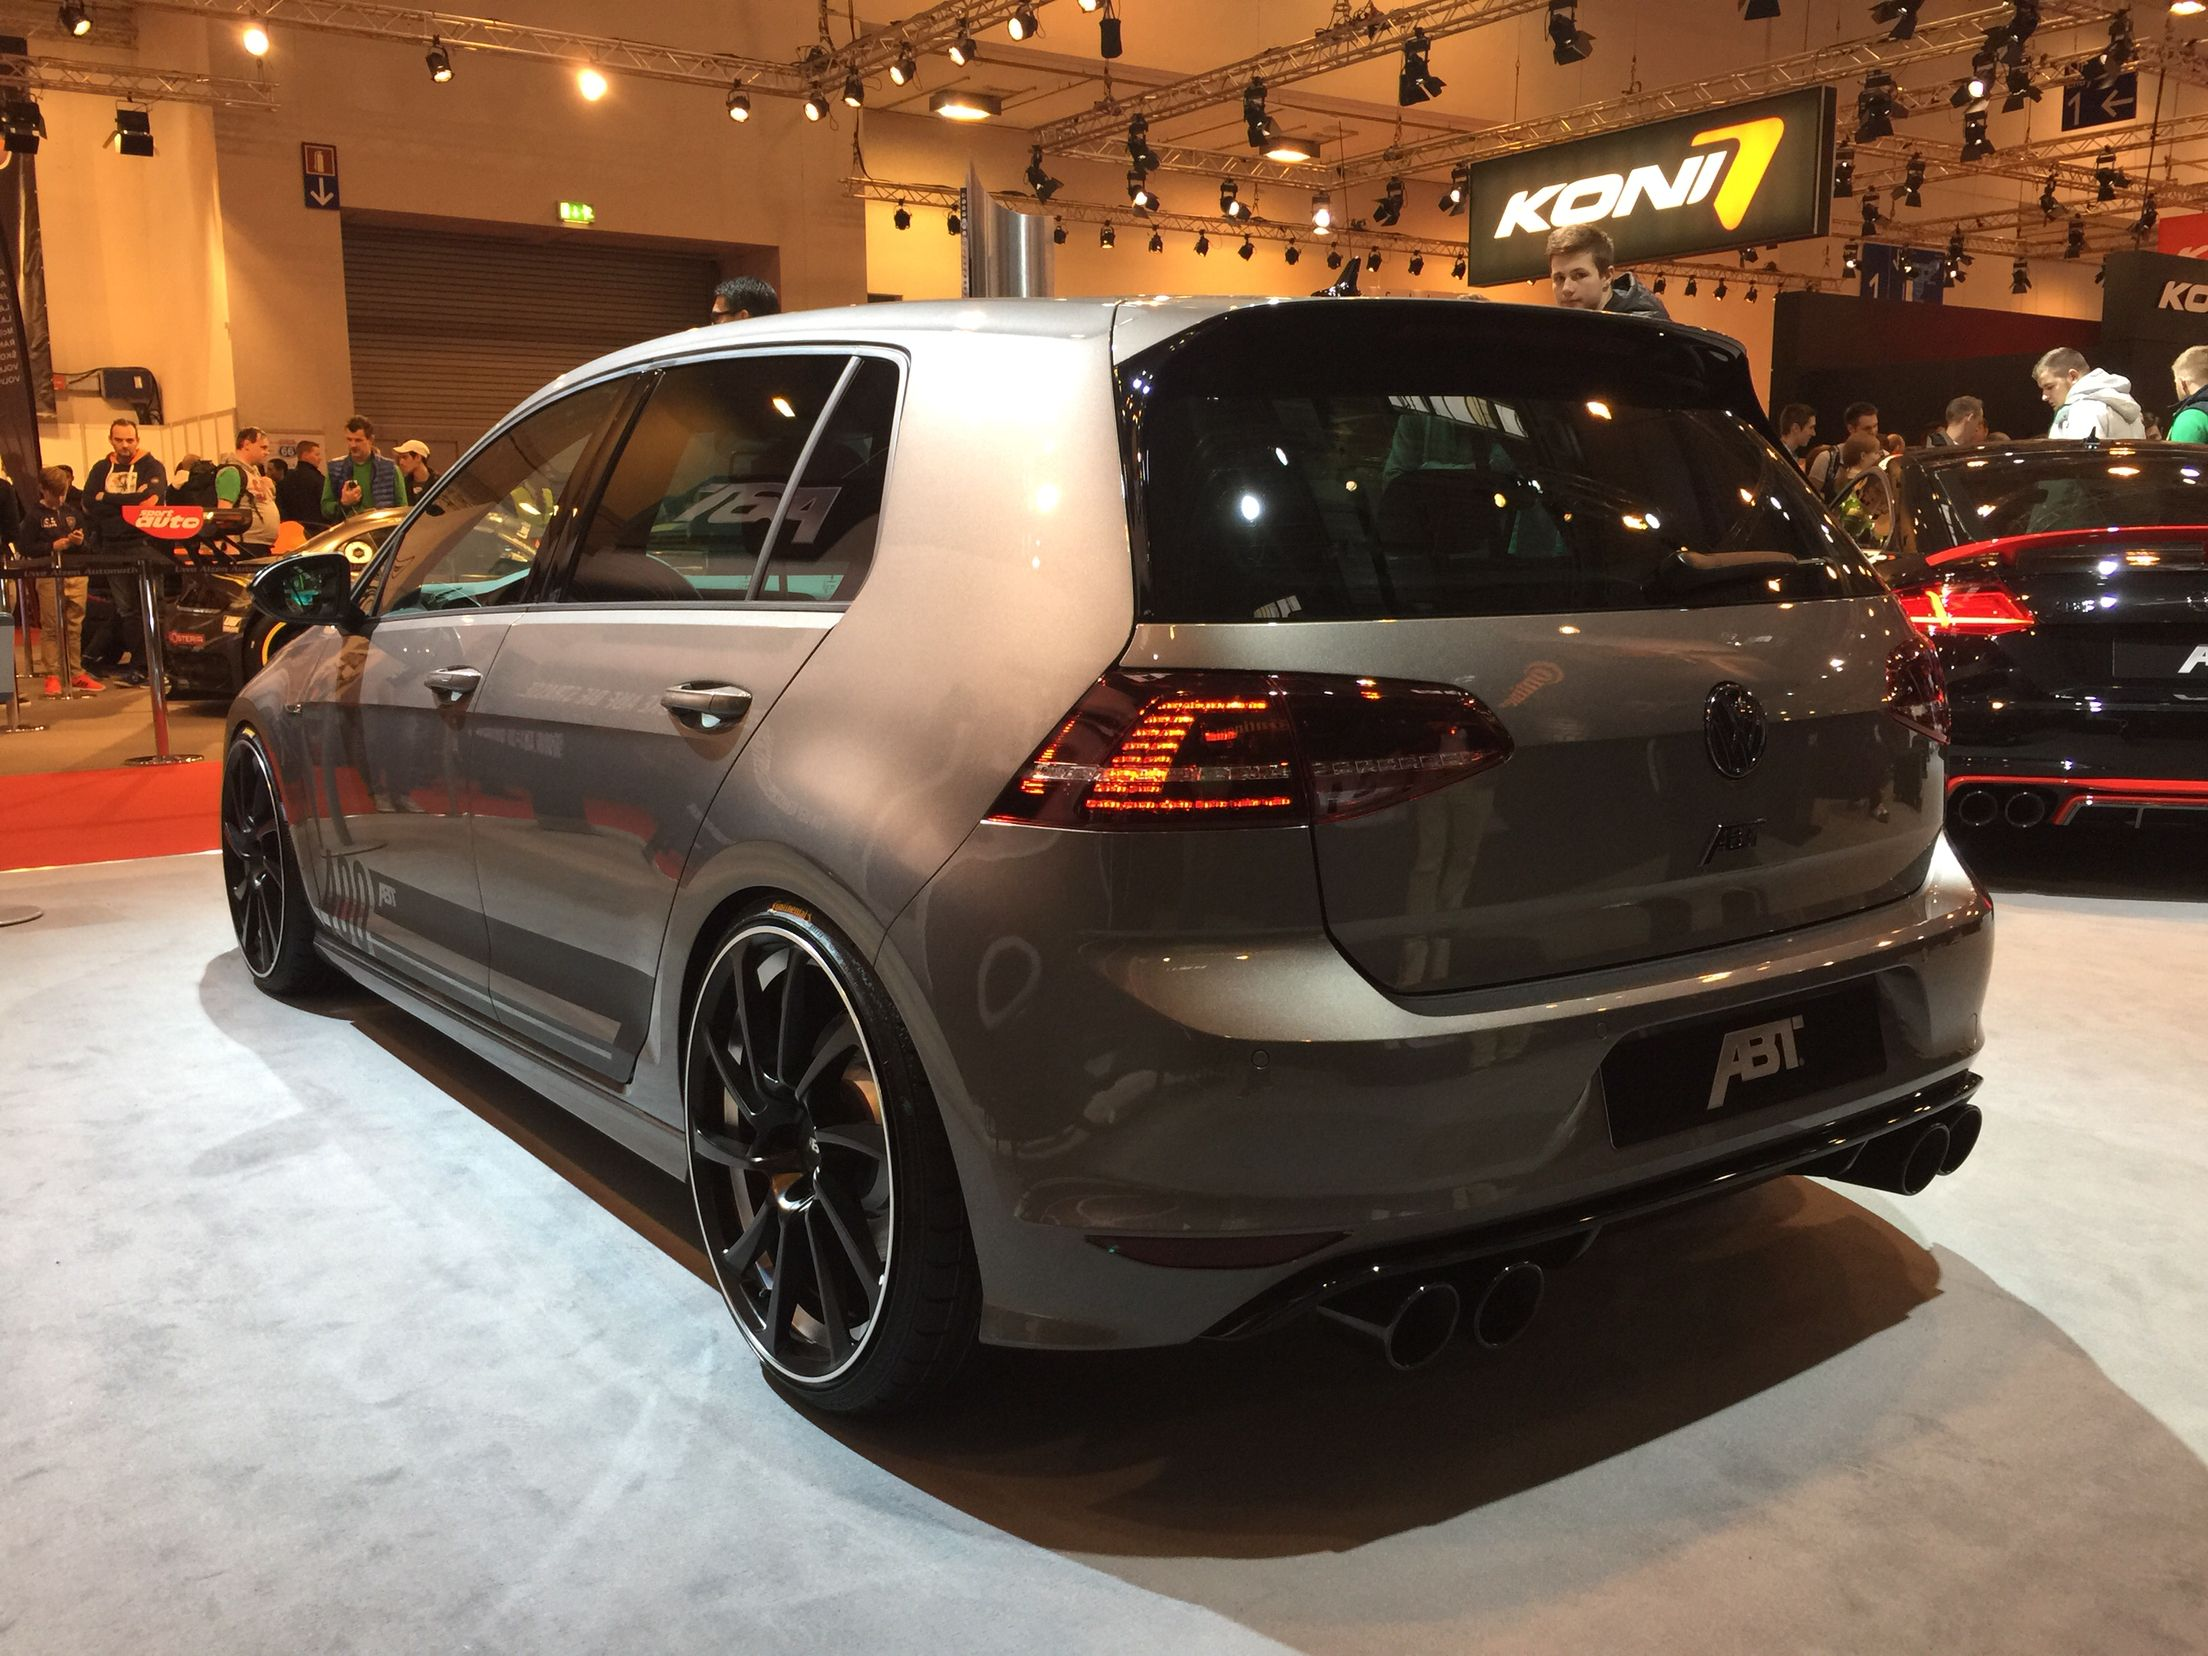 Golf 7 R Abt Dreams on Wheels